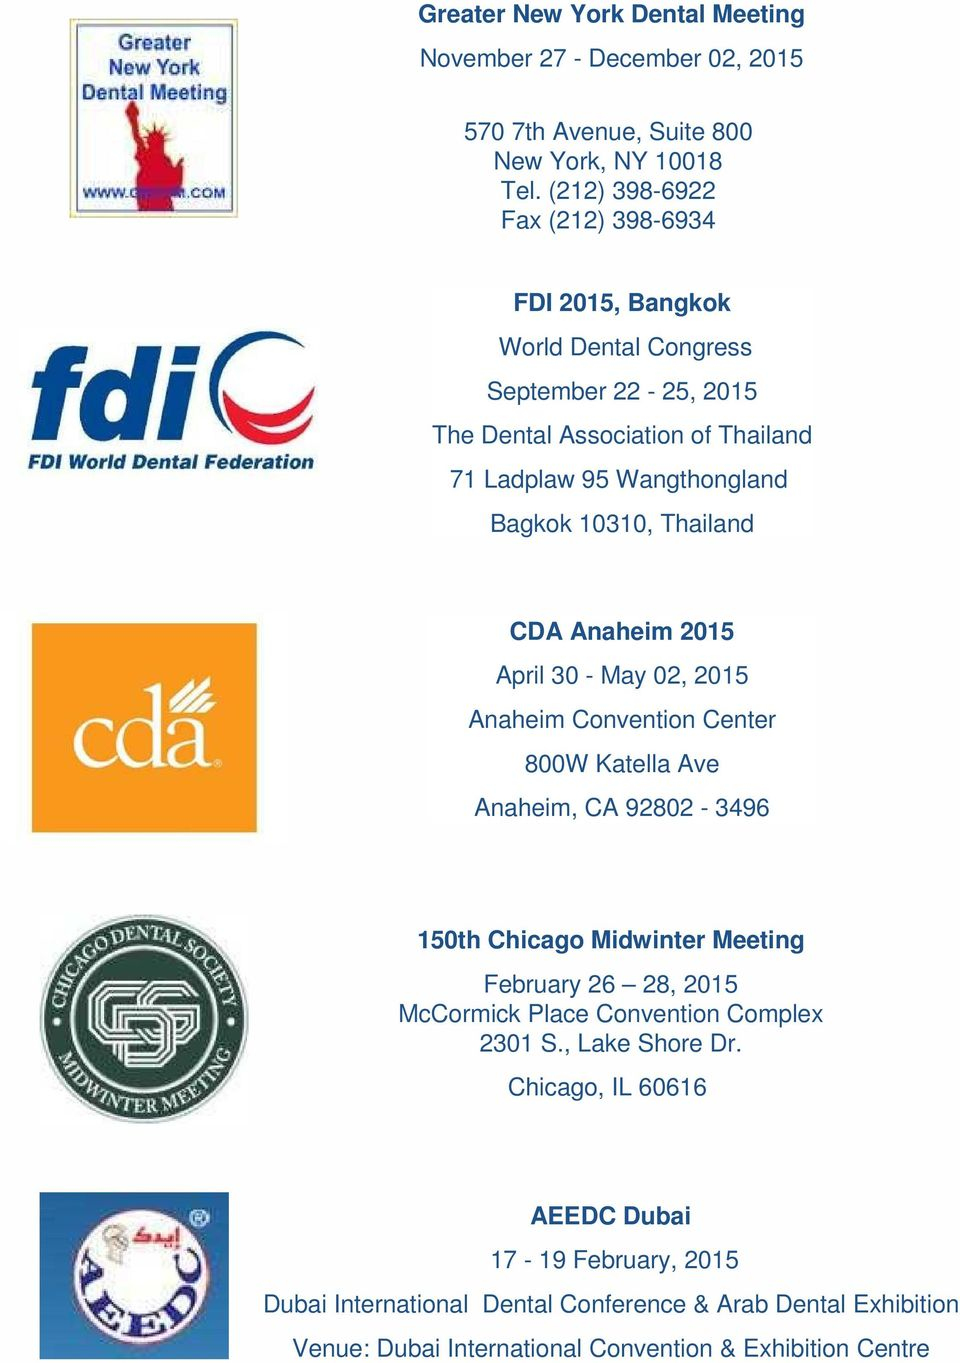 10310, Thailand CDA Anaheim 2015 April 30 - May 02, 2015 Anaheim Convention Center 800W Katella Ave Anaheim, CA 92802-3496 150th Chicago Midwinter Meeting February 26 28,